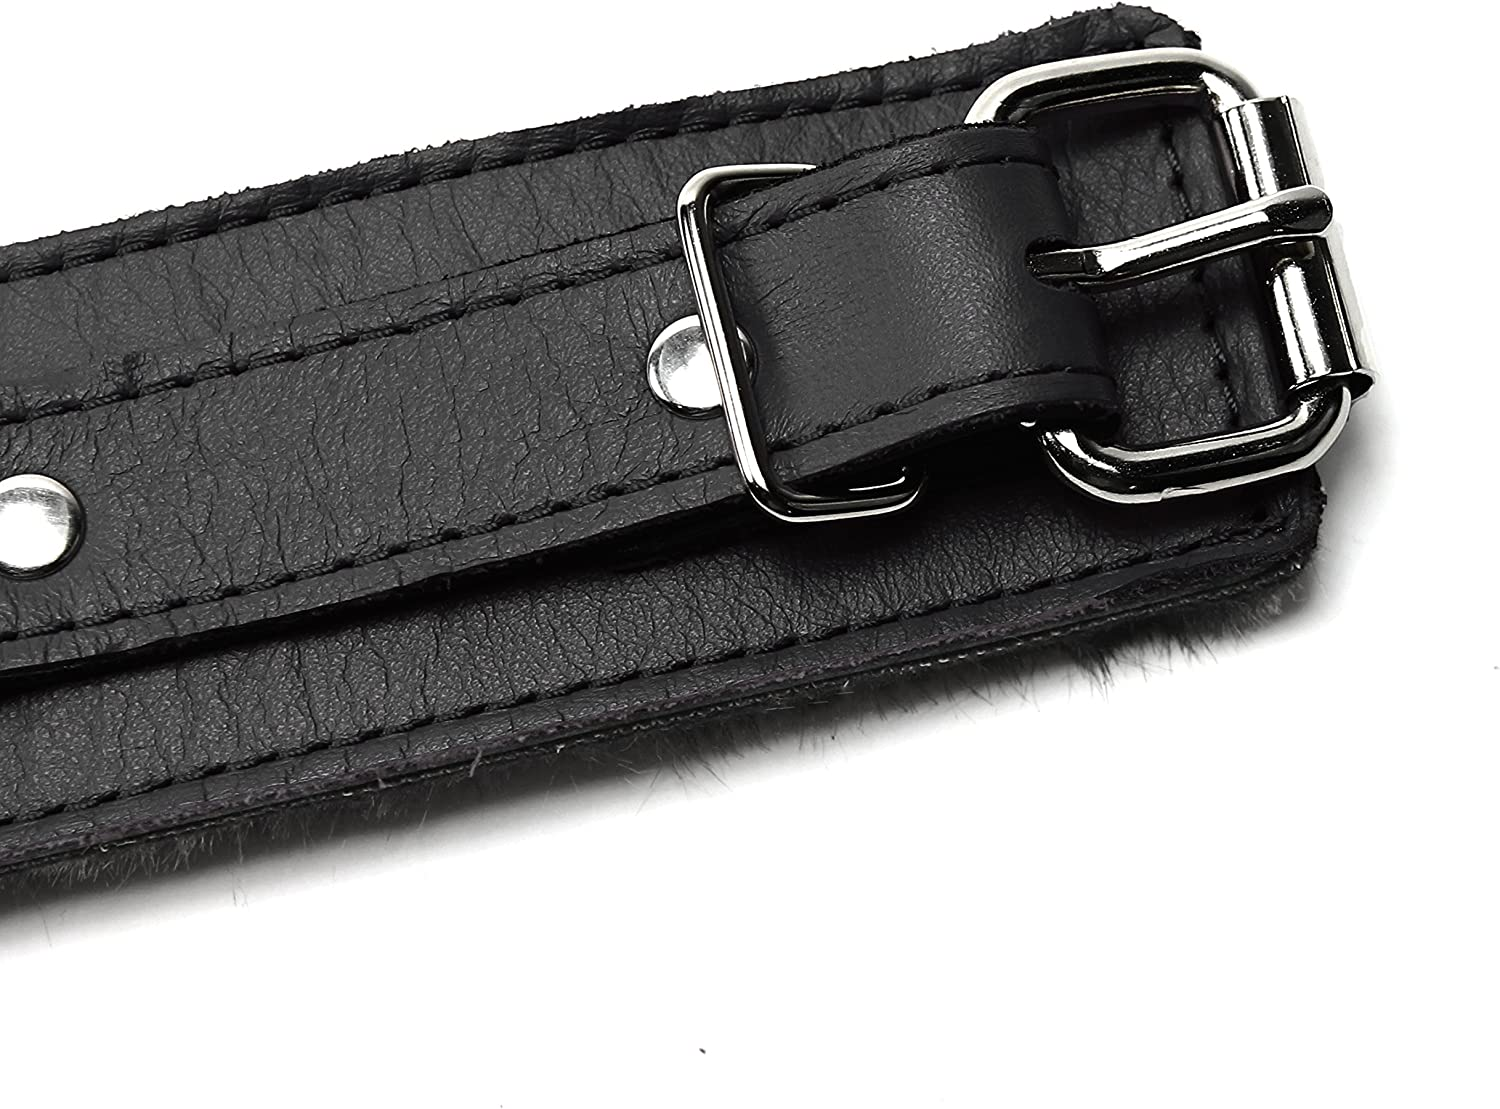 Deep Black, Ankle Barcelona Wrist and Ankle Cuffs Soft Lamb Hide Natural Leather